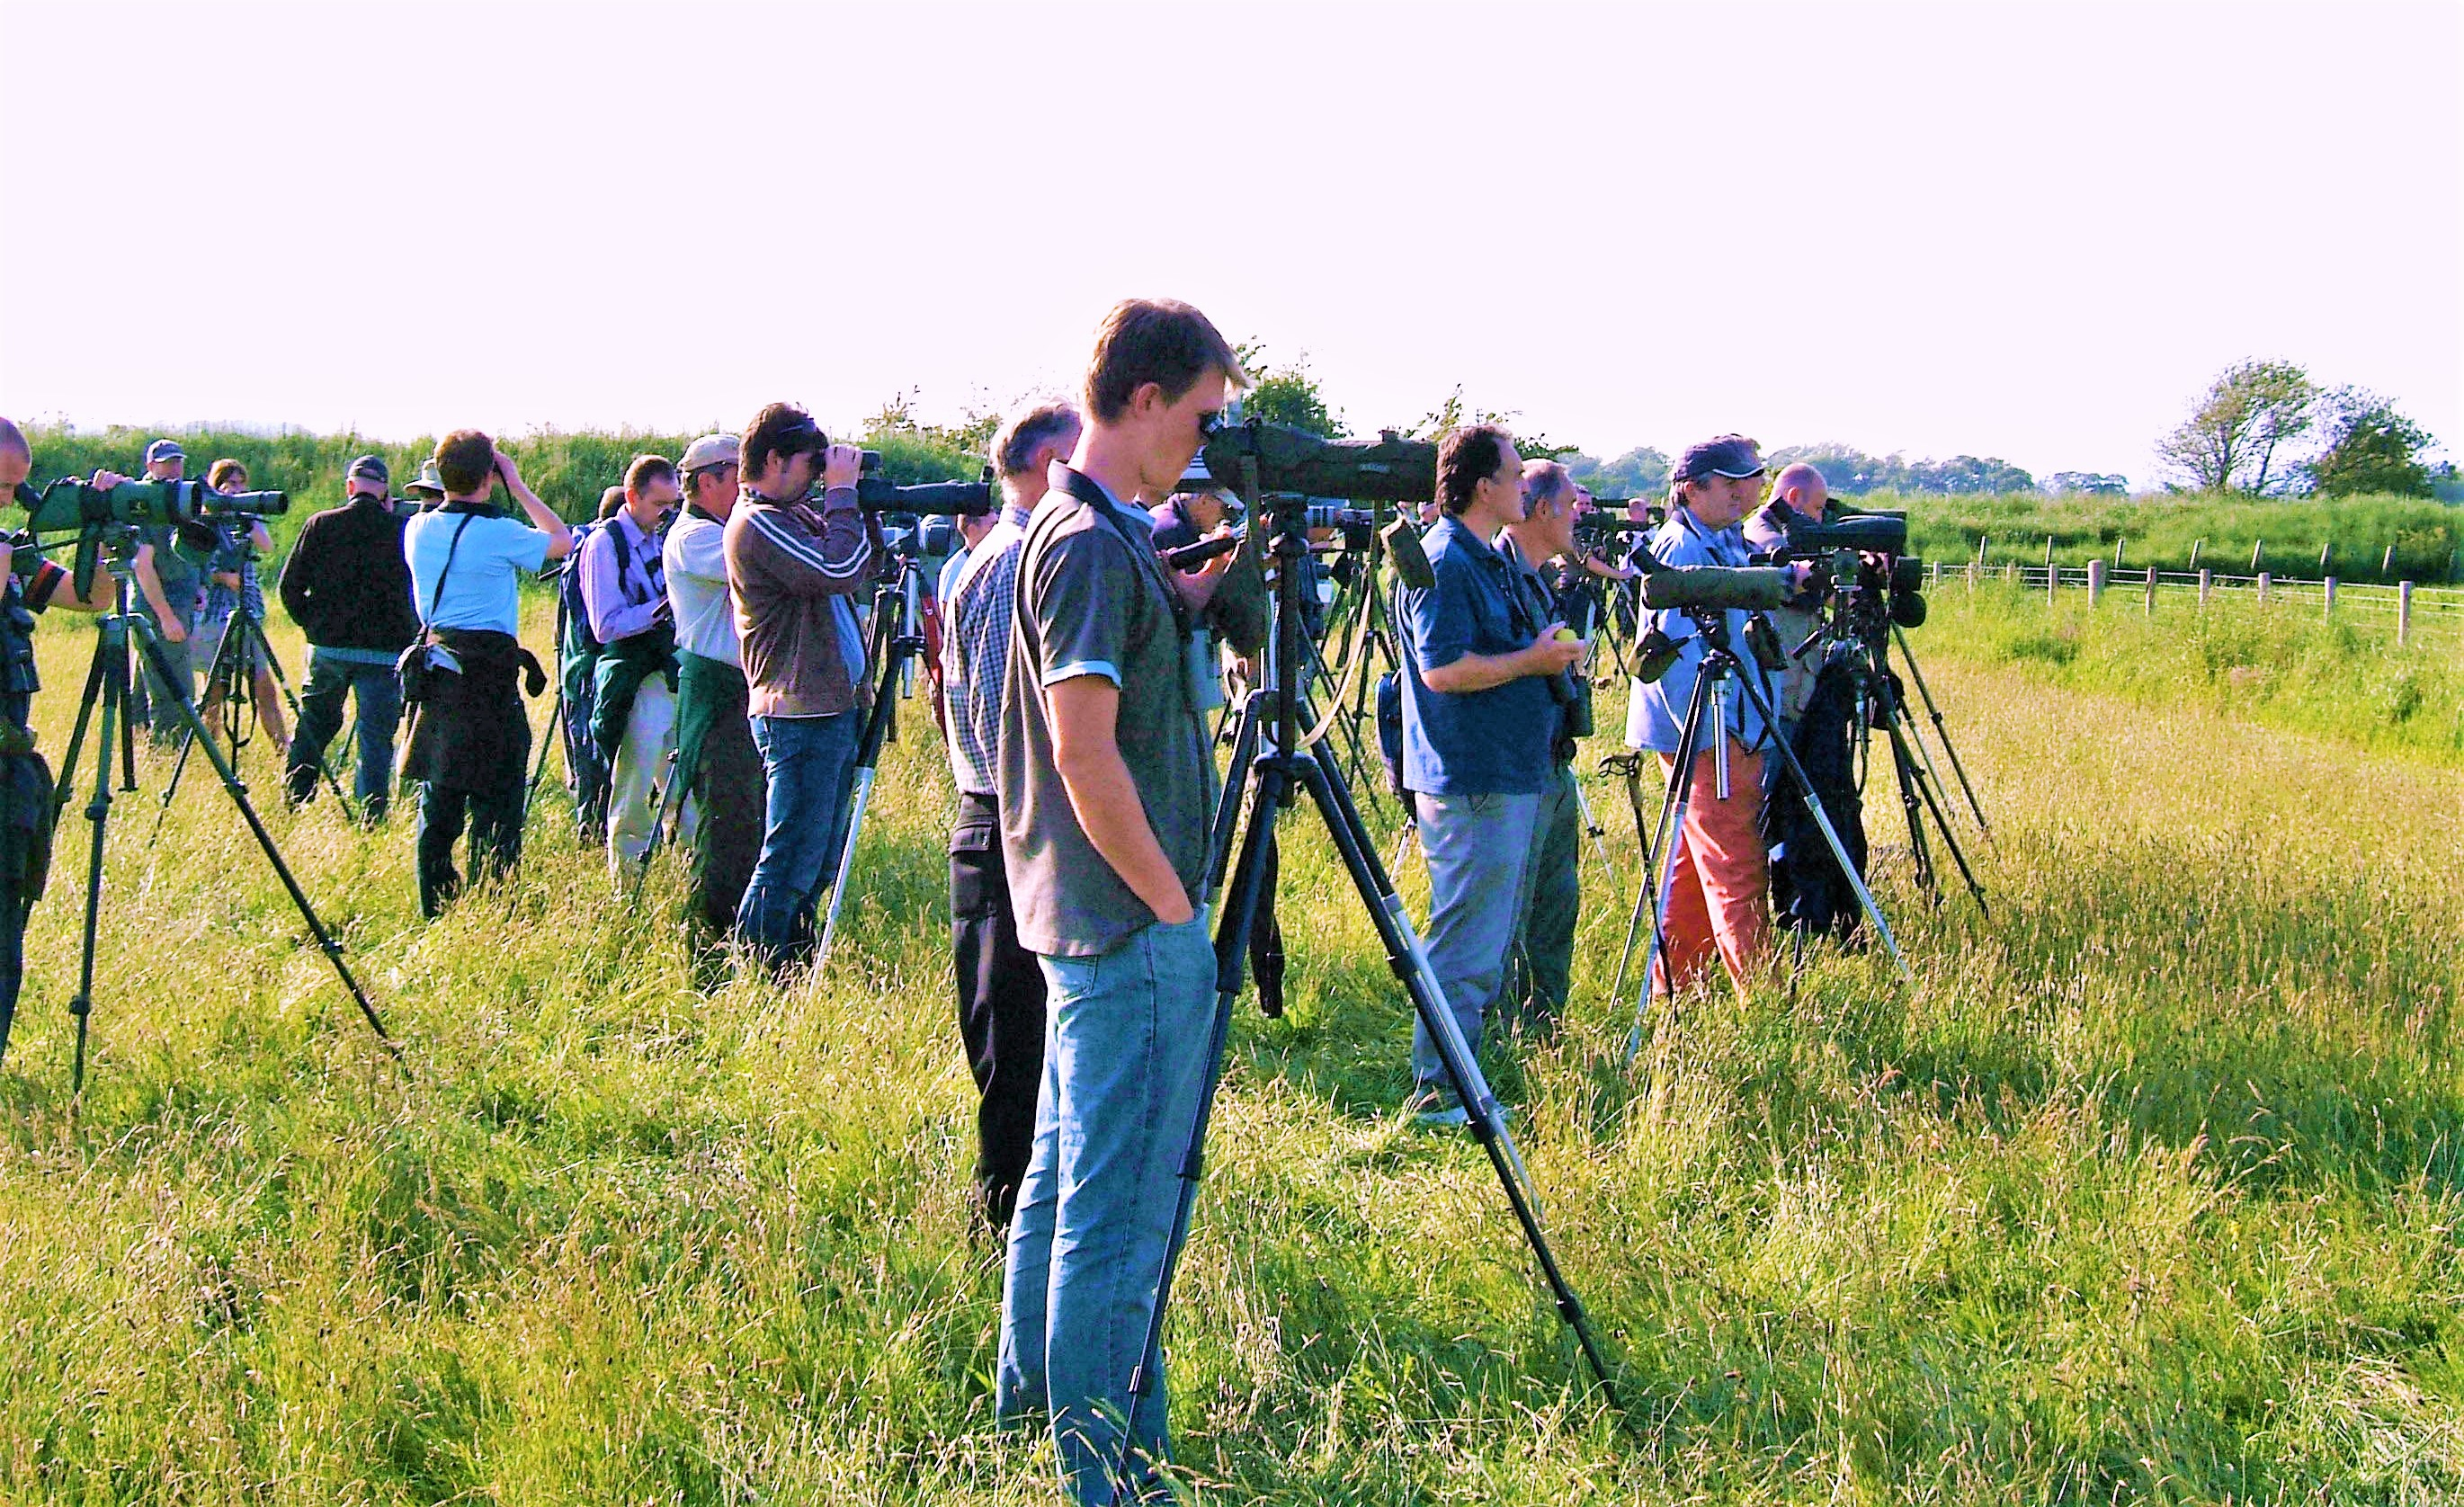 File Birders at Caerlaverock jpg - Wikimedia Commons